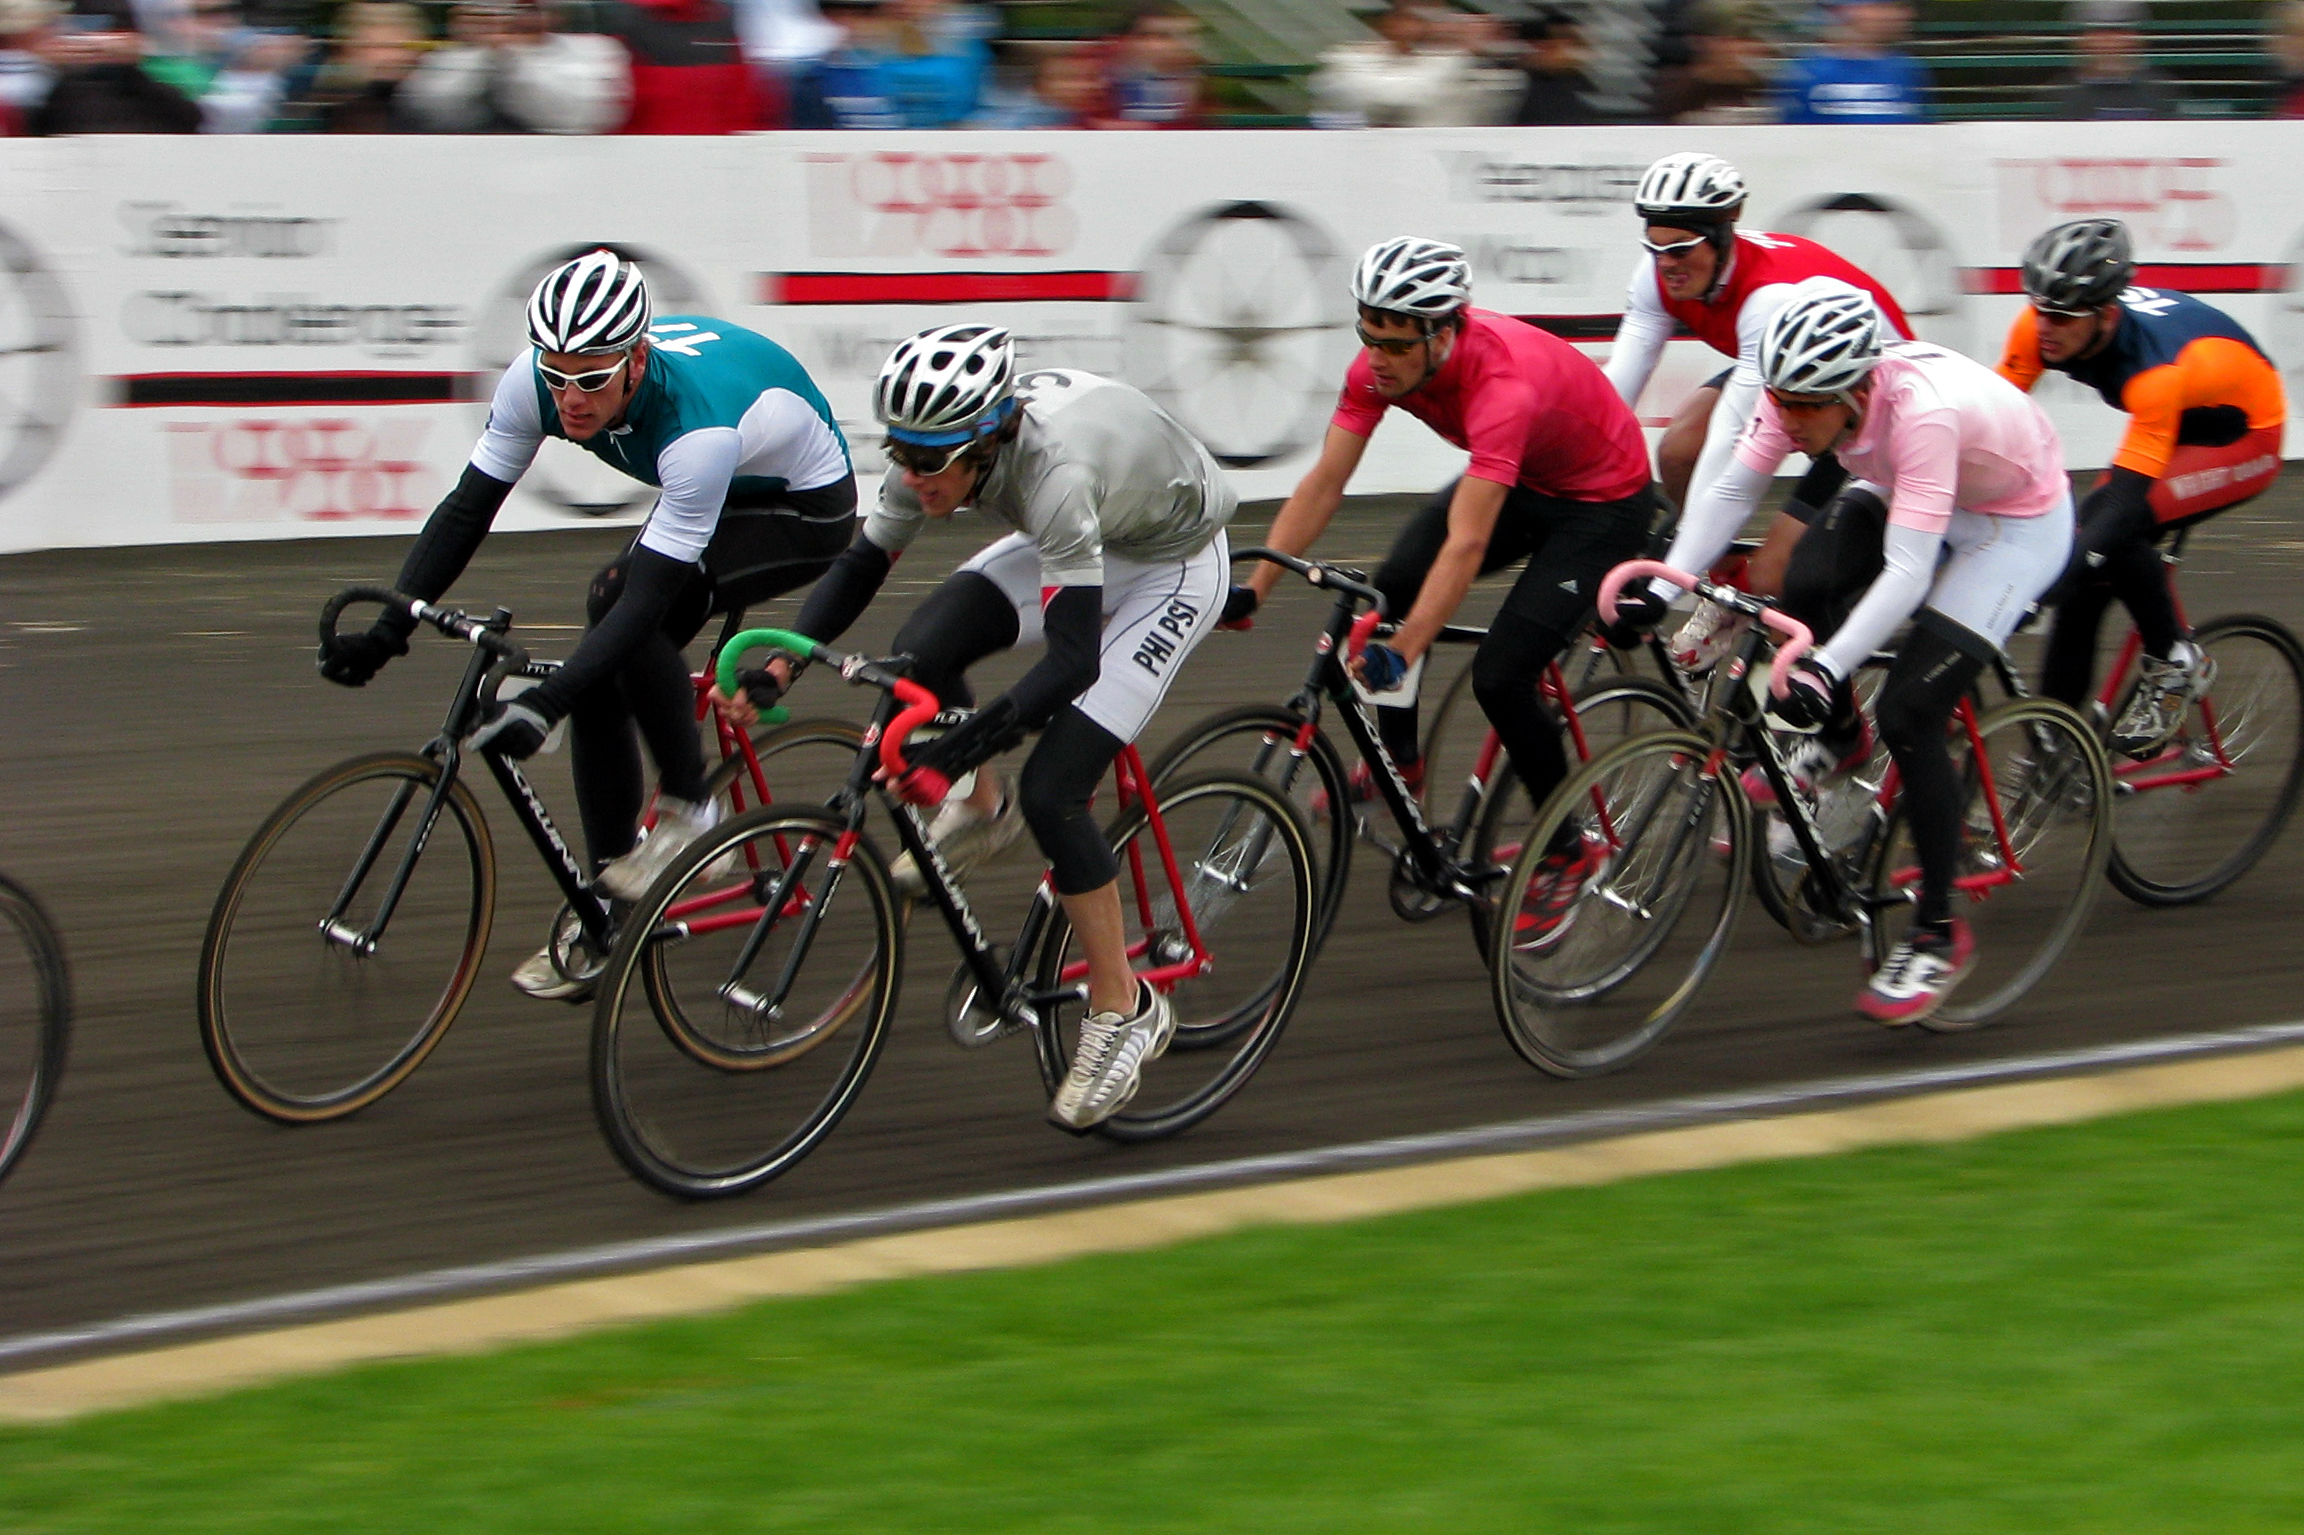 The Little 500 bike race has been an Indiana University tradition since 1951.